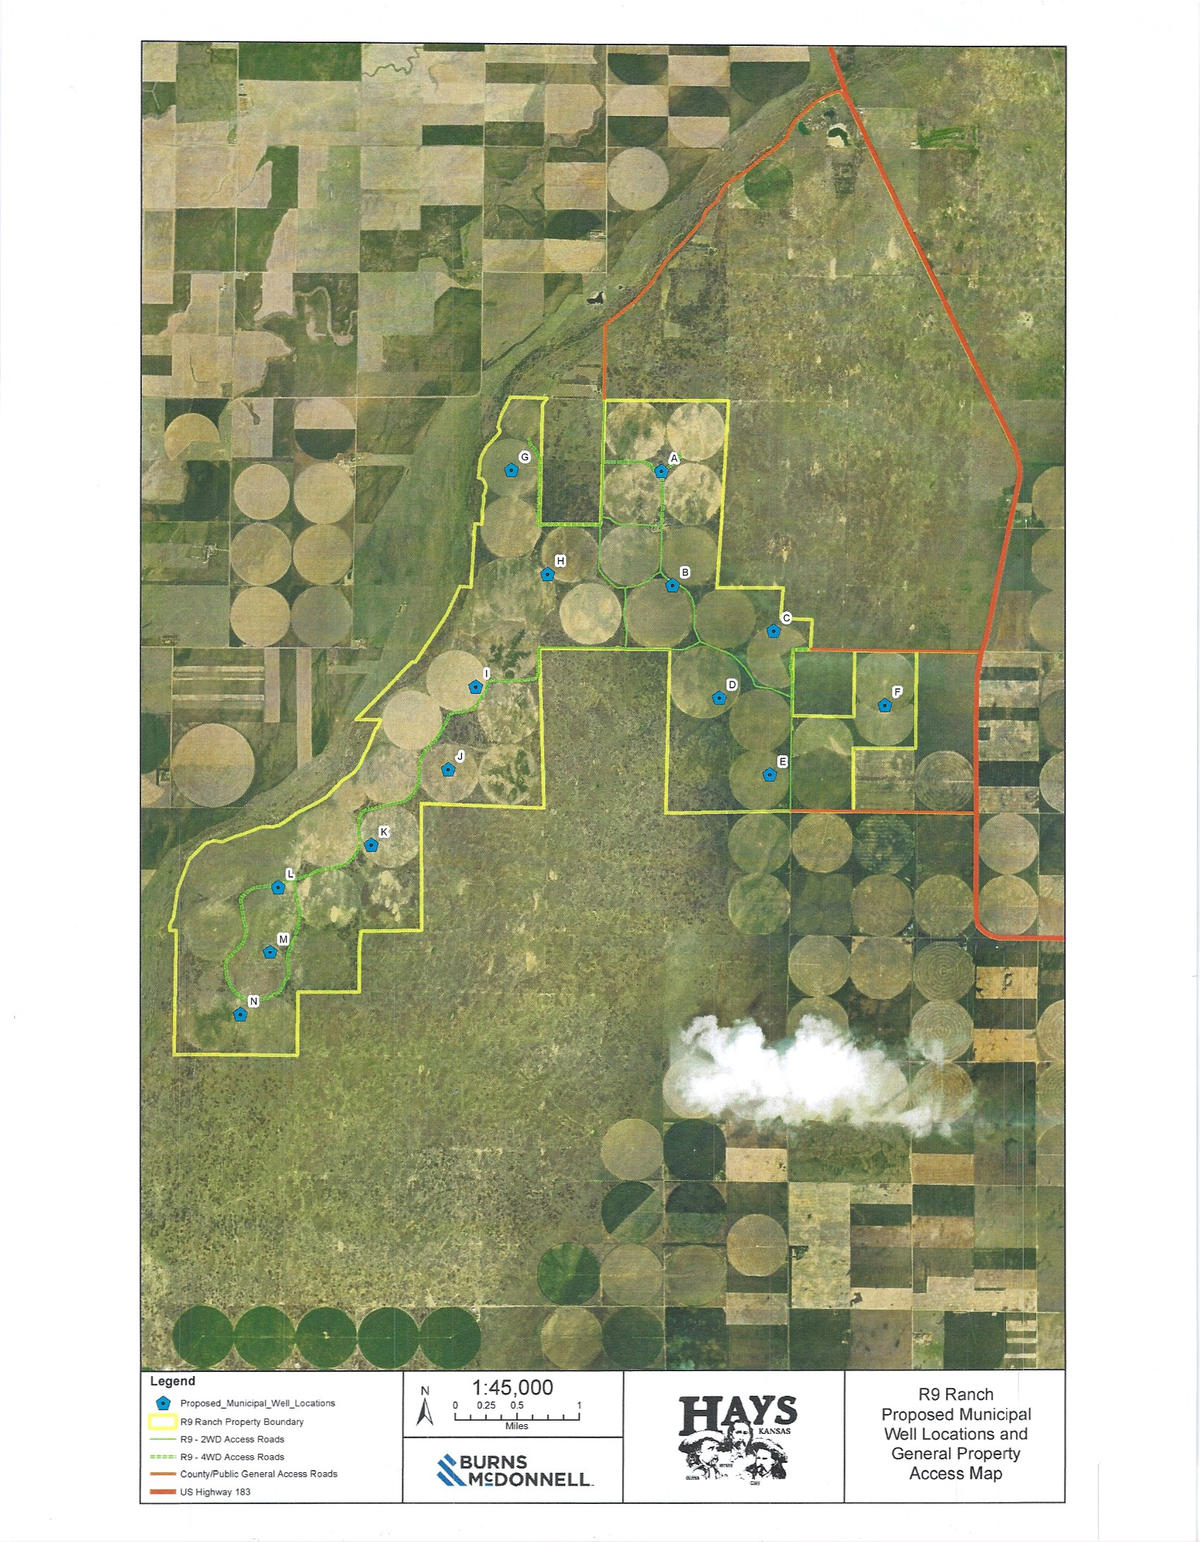 A map of proposed locations for water wells on the R9 Ranch.